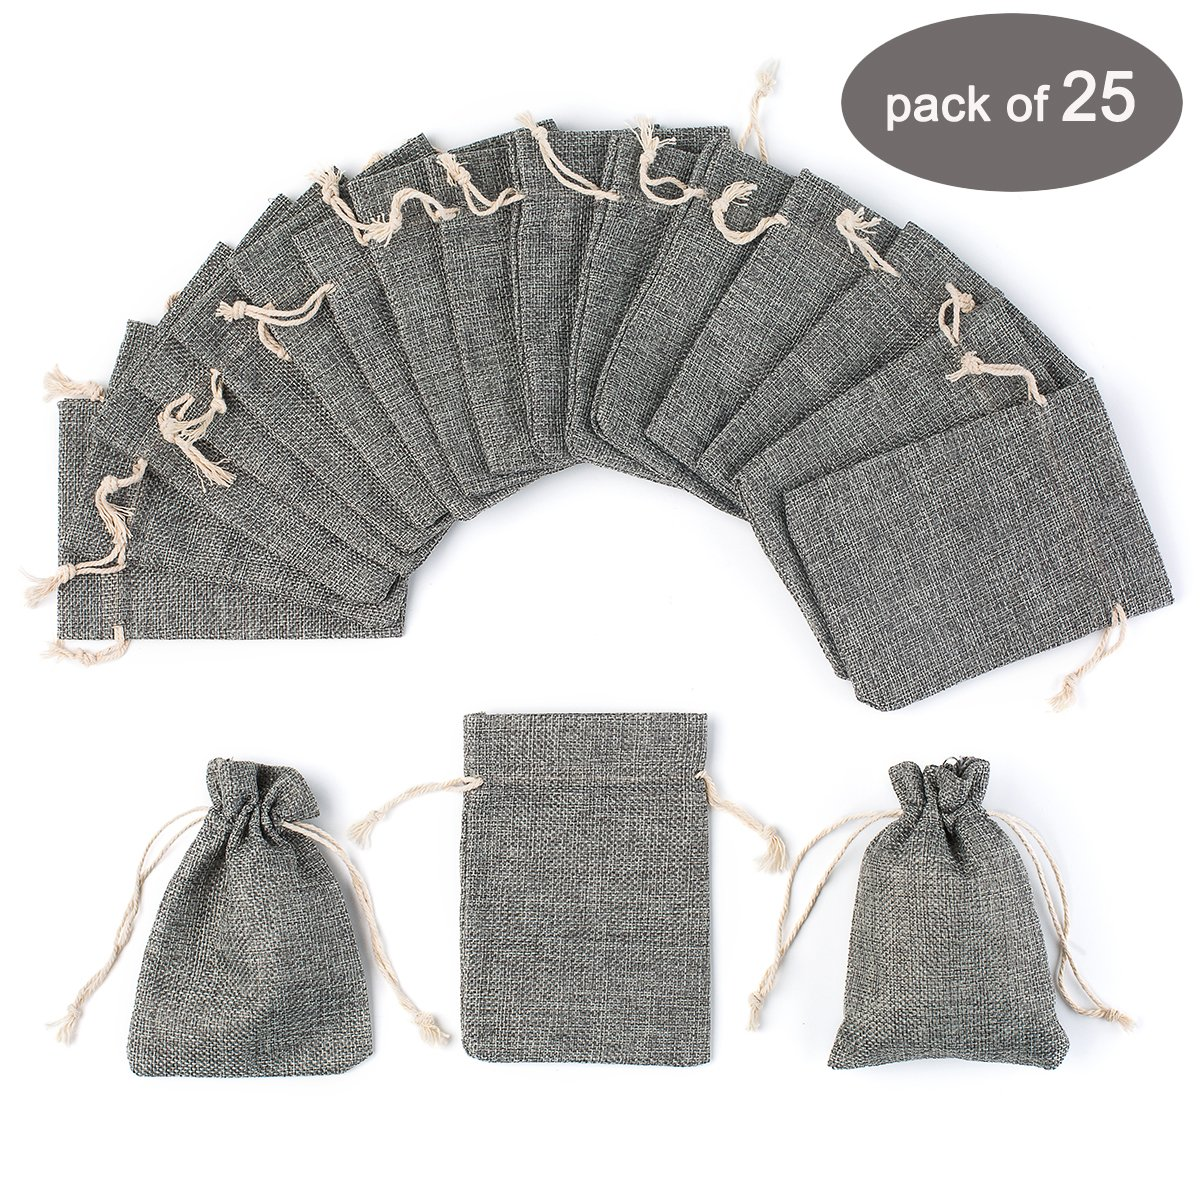 Amazon.com: Yuxier 25pcs Burlap Bags with Drawstring Gift Bags for ...